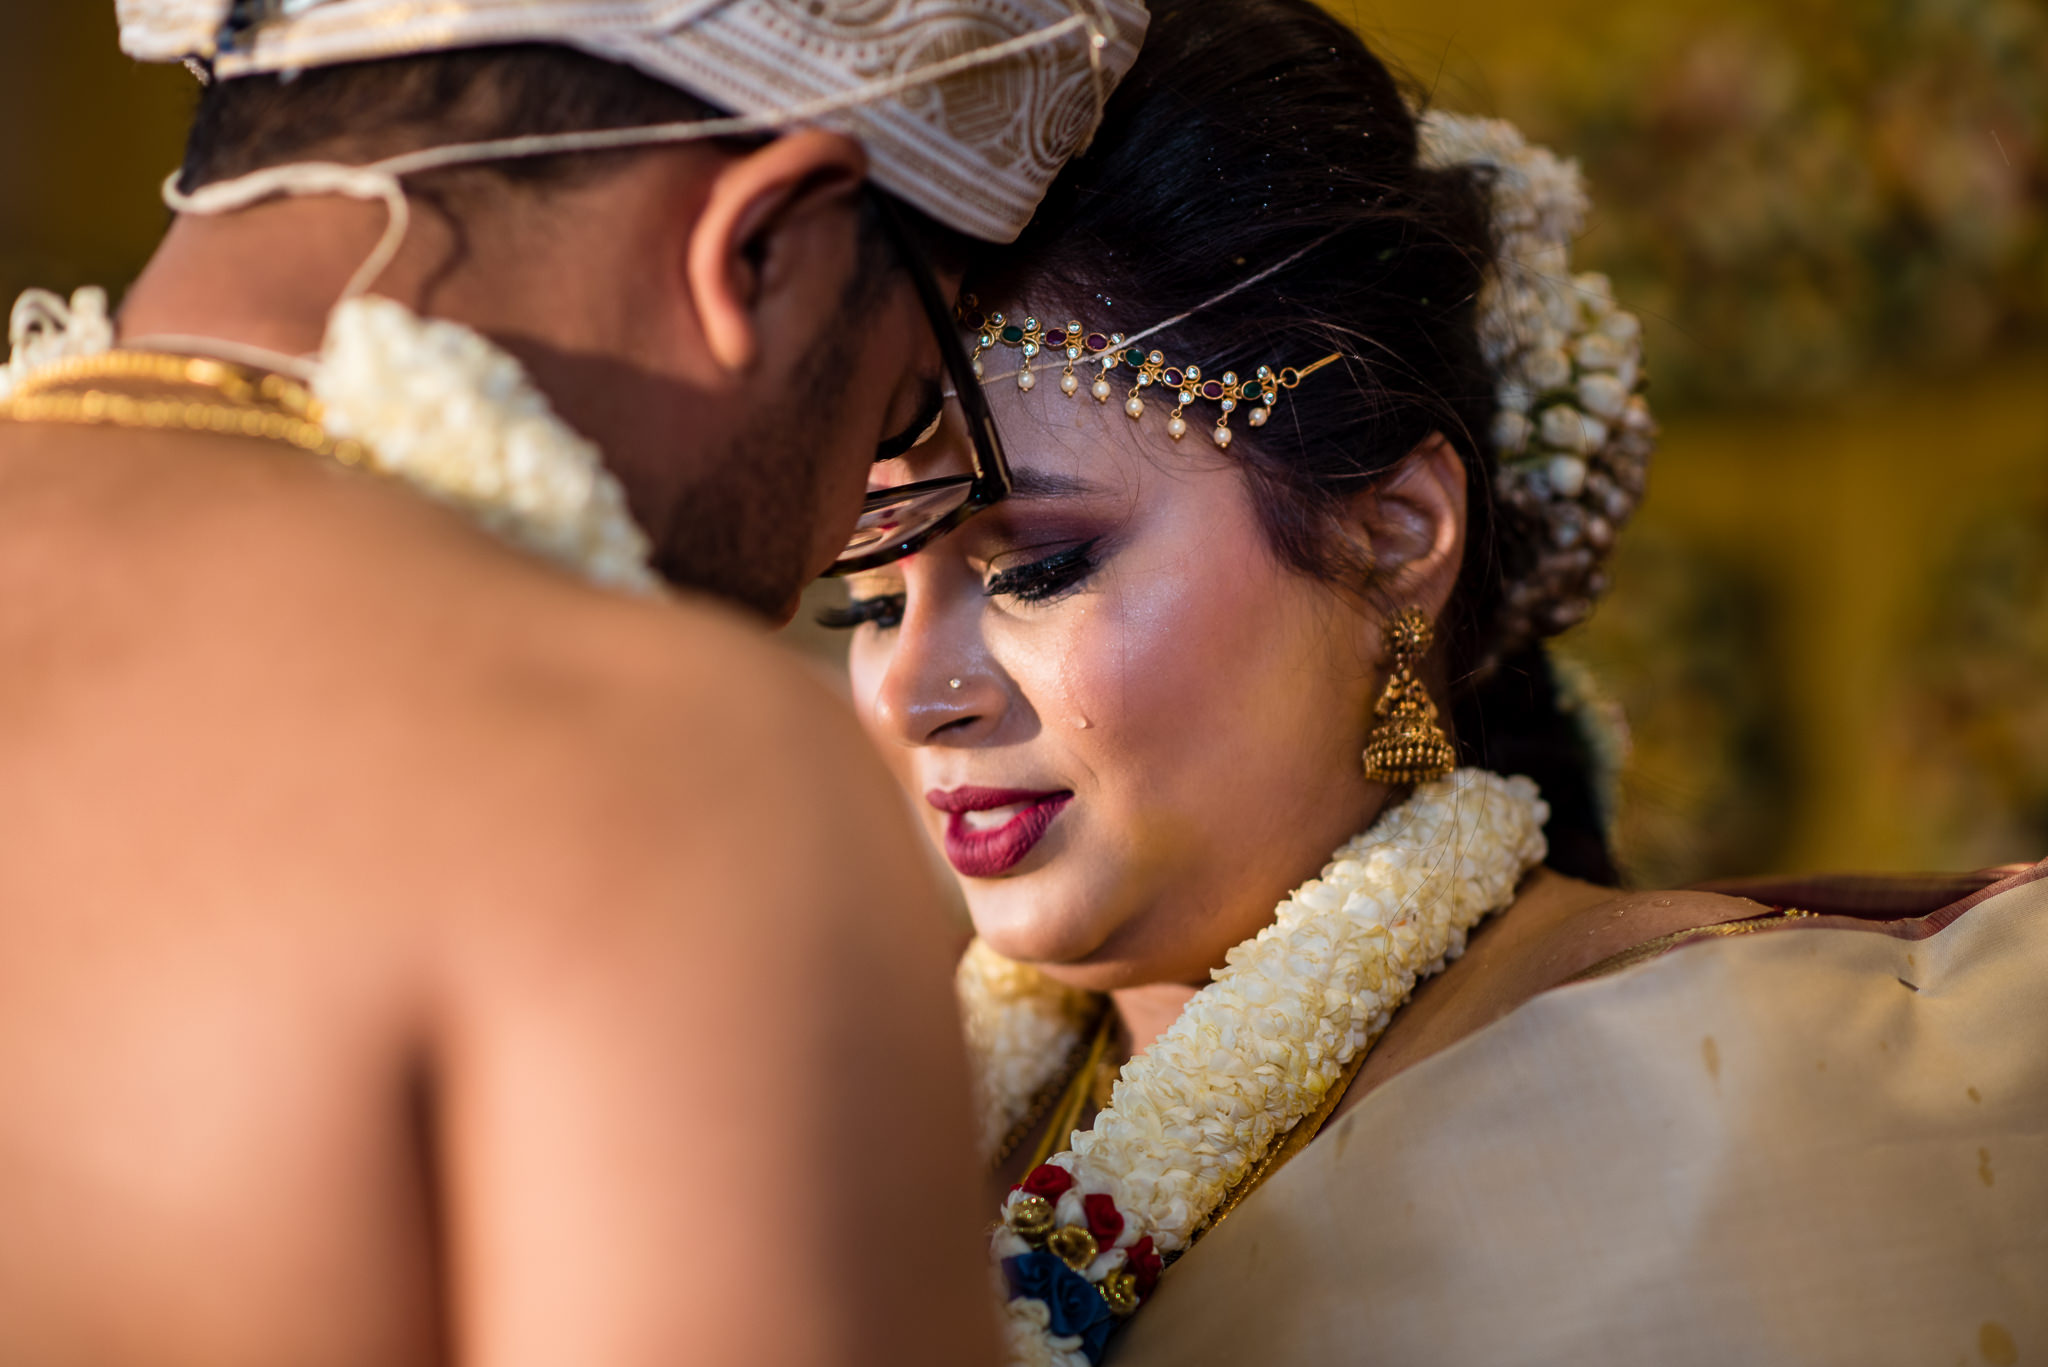 Wedding Photographed by Srikar Rao